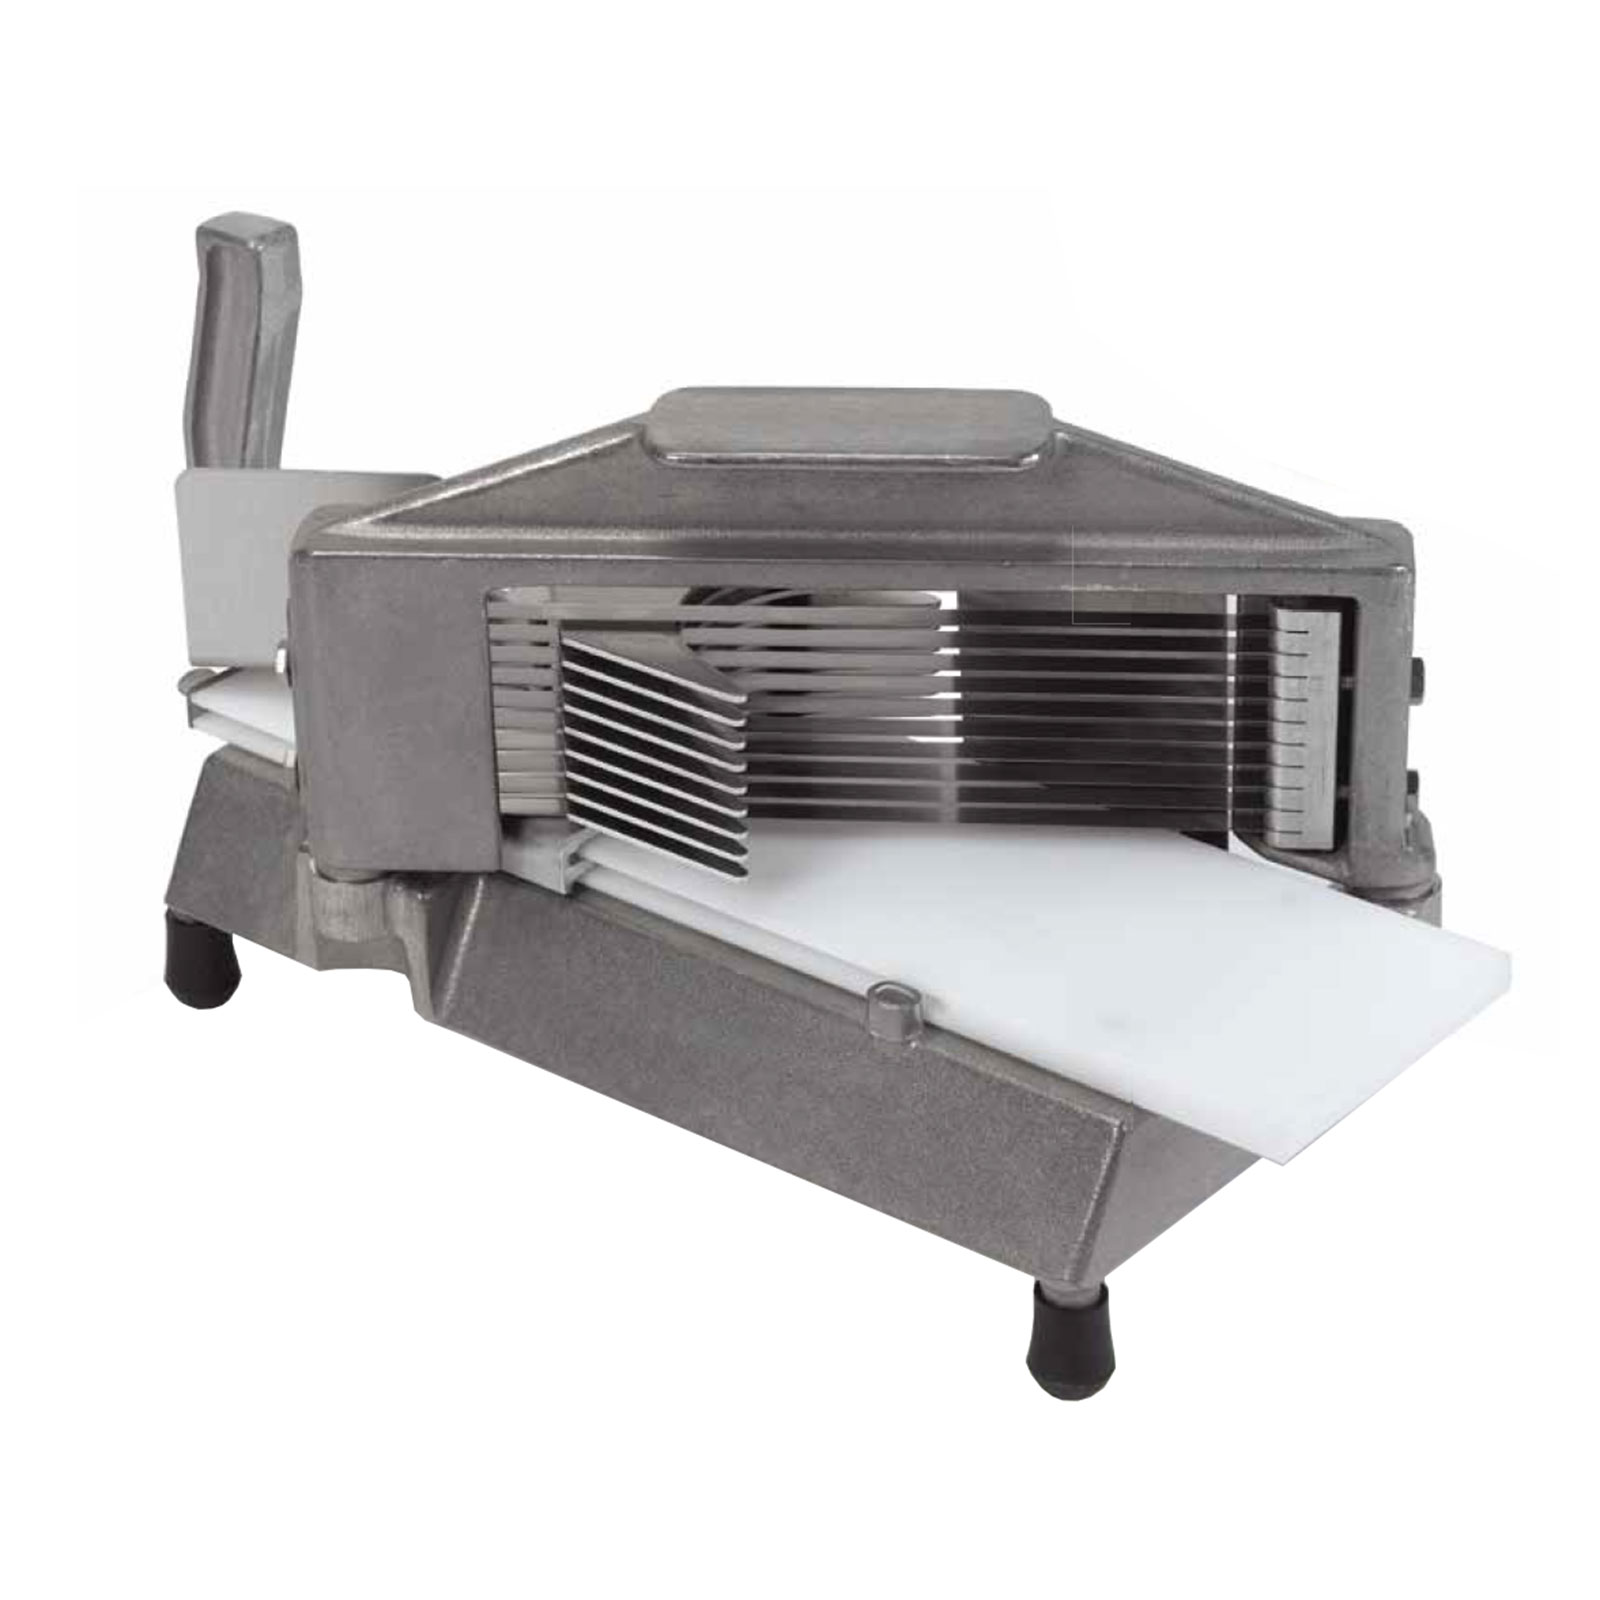 Nemco Food Equipment 55600-2 slicer, tomato